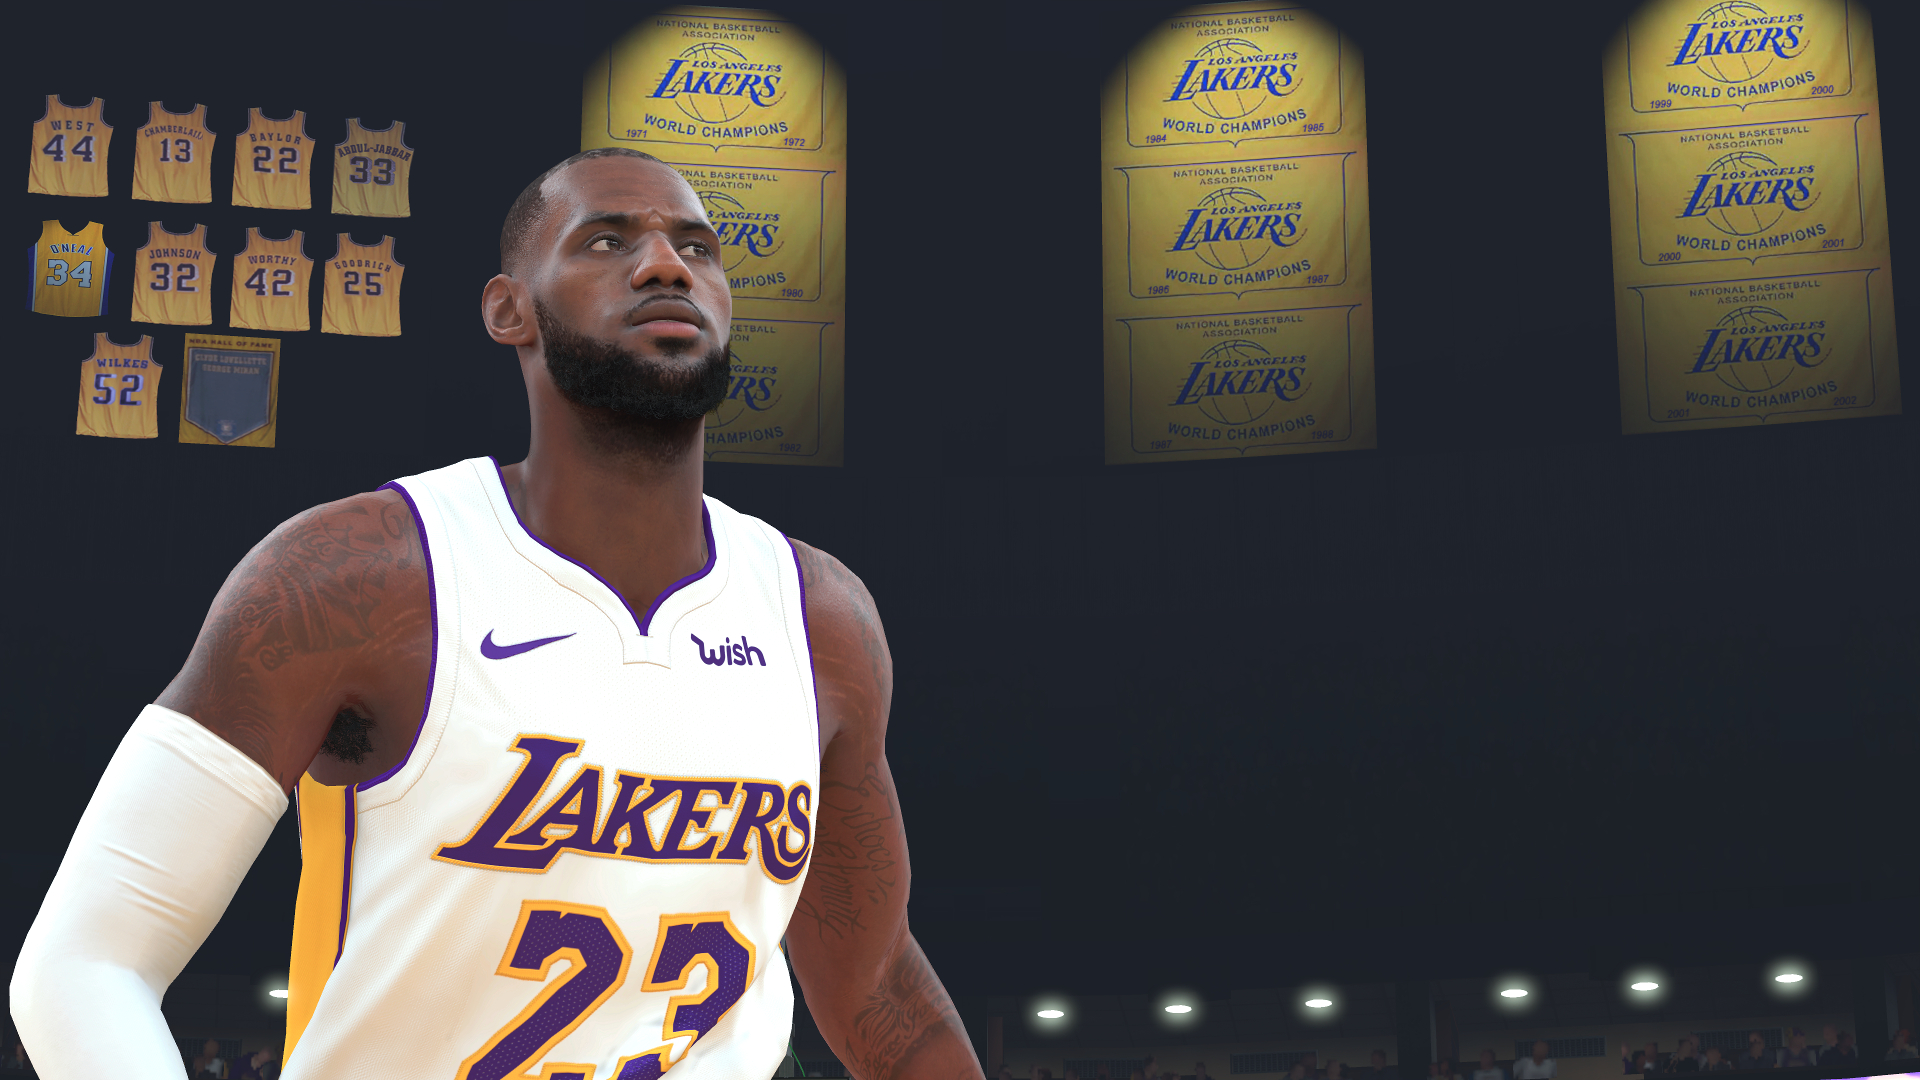 nba 2k19: lakers lebron james